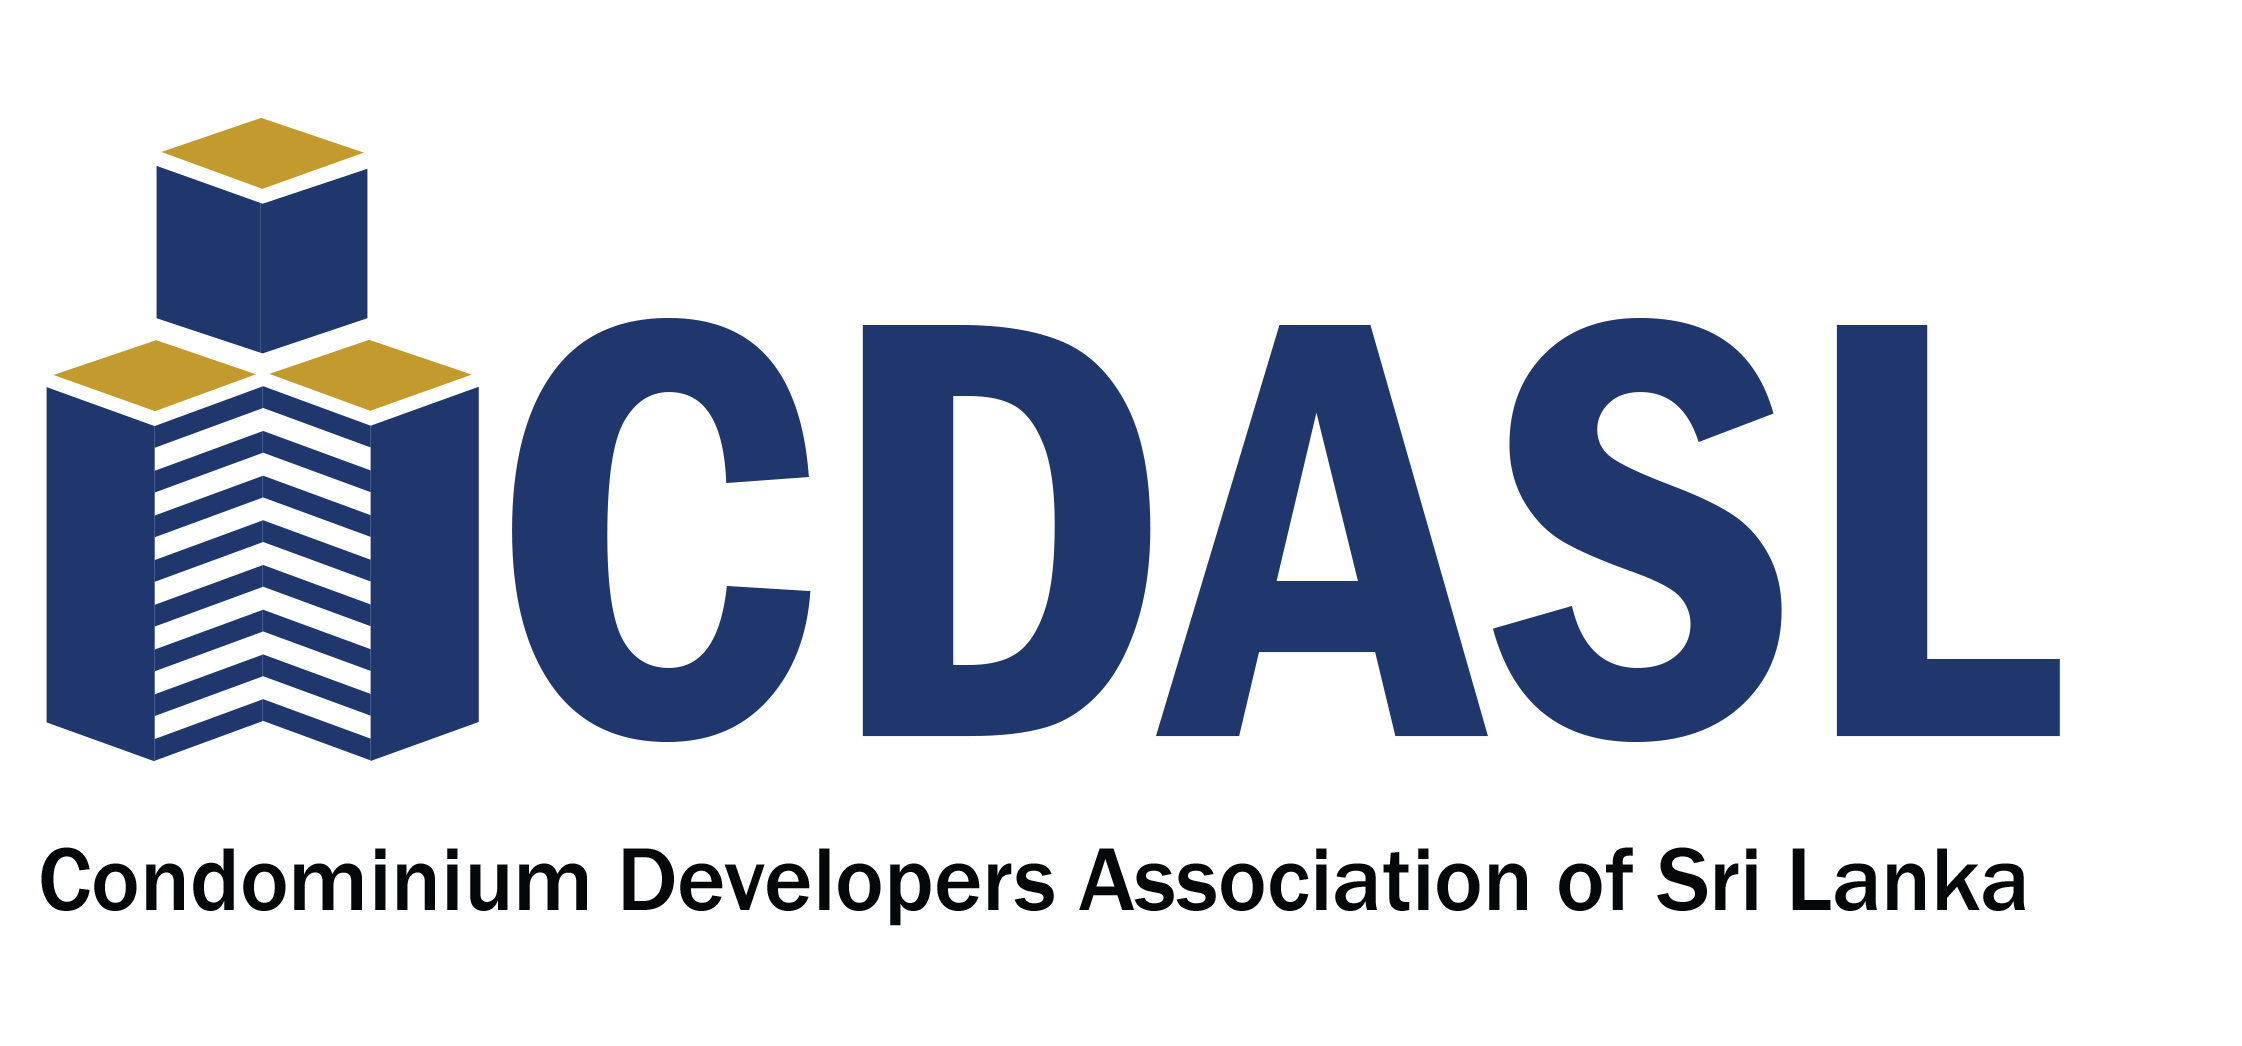 Relief for the Property and Construction Industry - Letter to H.E. the President on 17th April 2020 by the CDASL